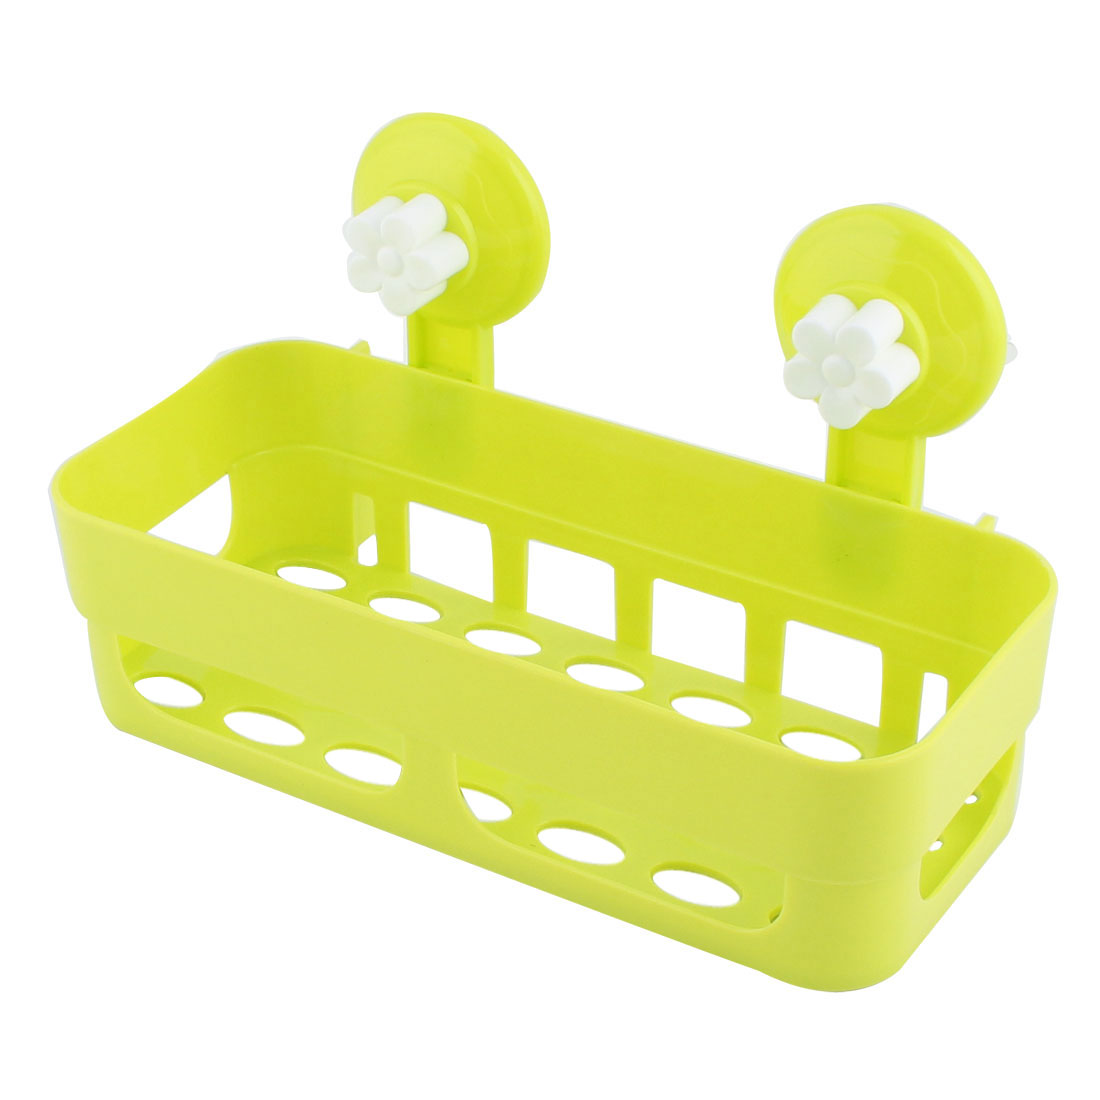 Bathroom Kitchen Rectangle Plastic Commodity Organize Suction Cup Shelf Holder Green